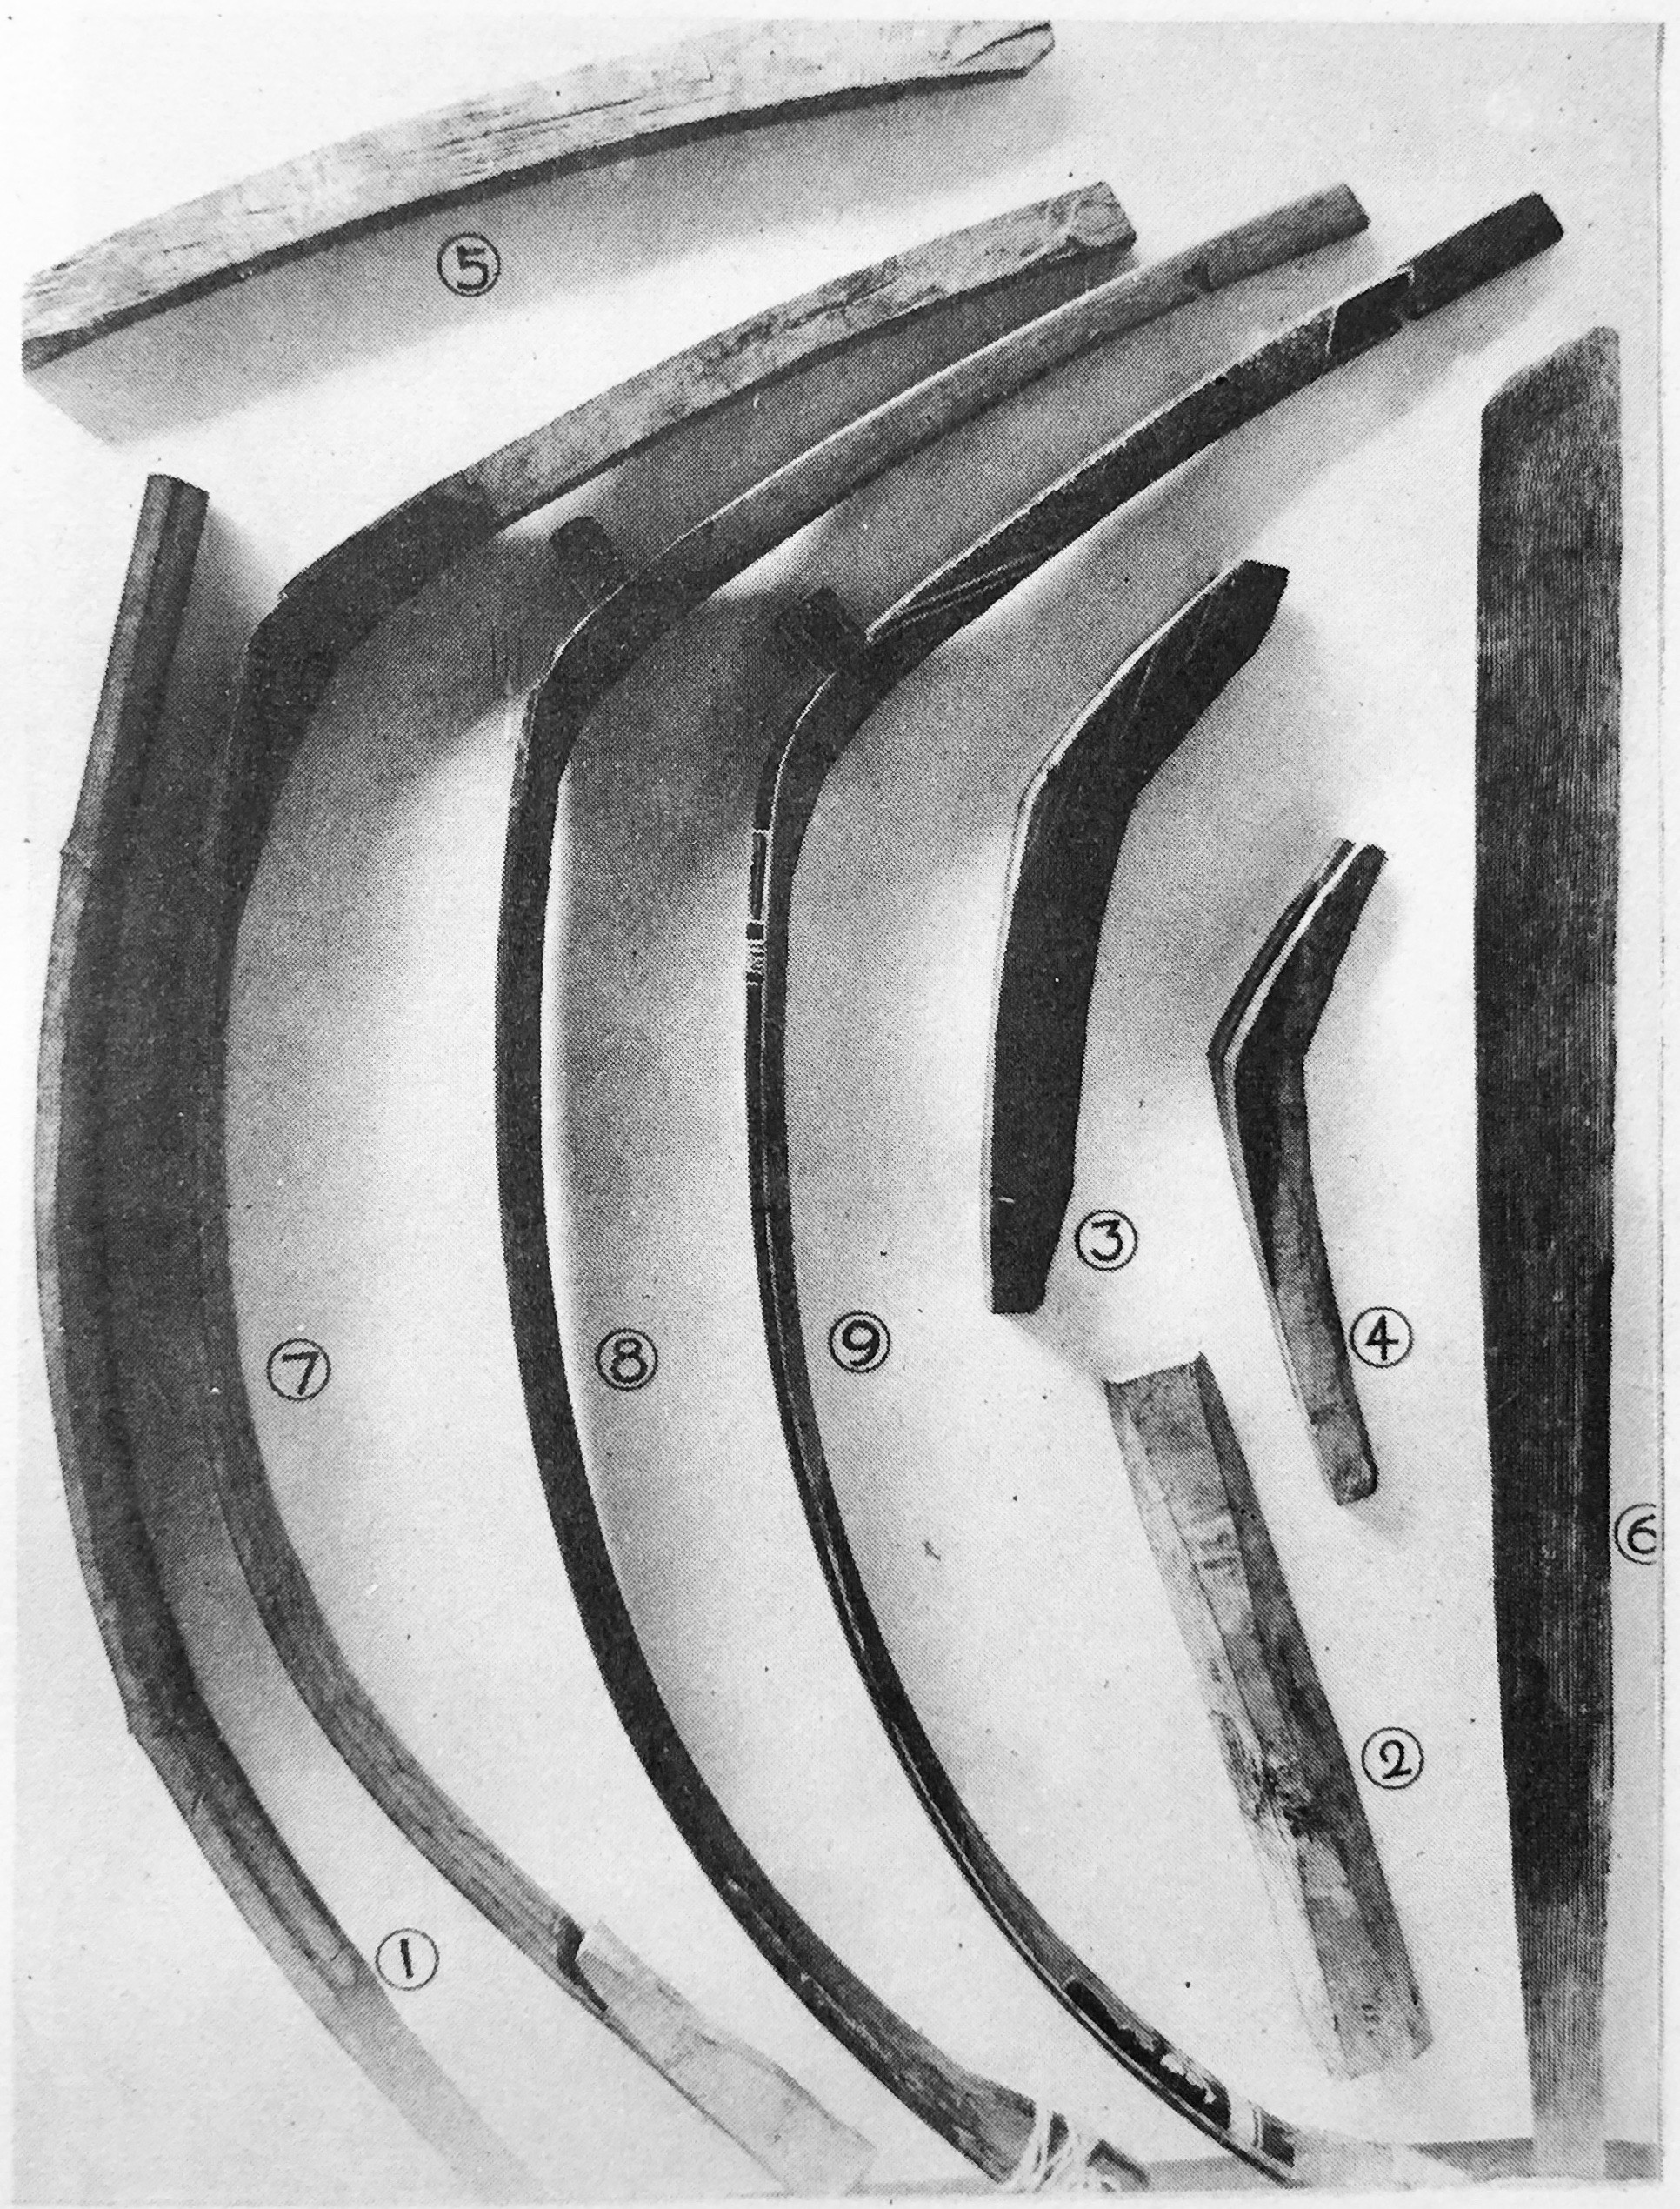 Bow parts